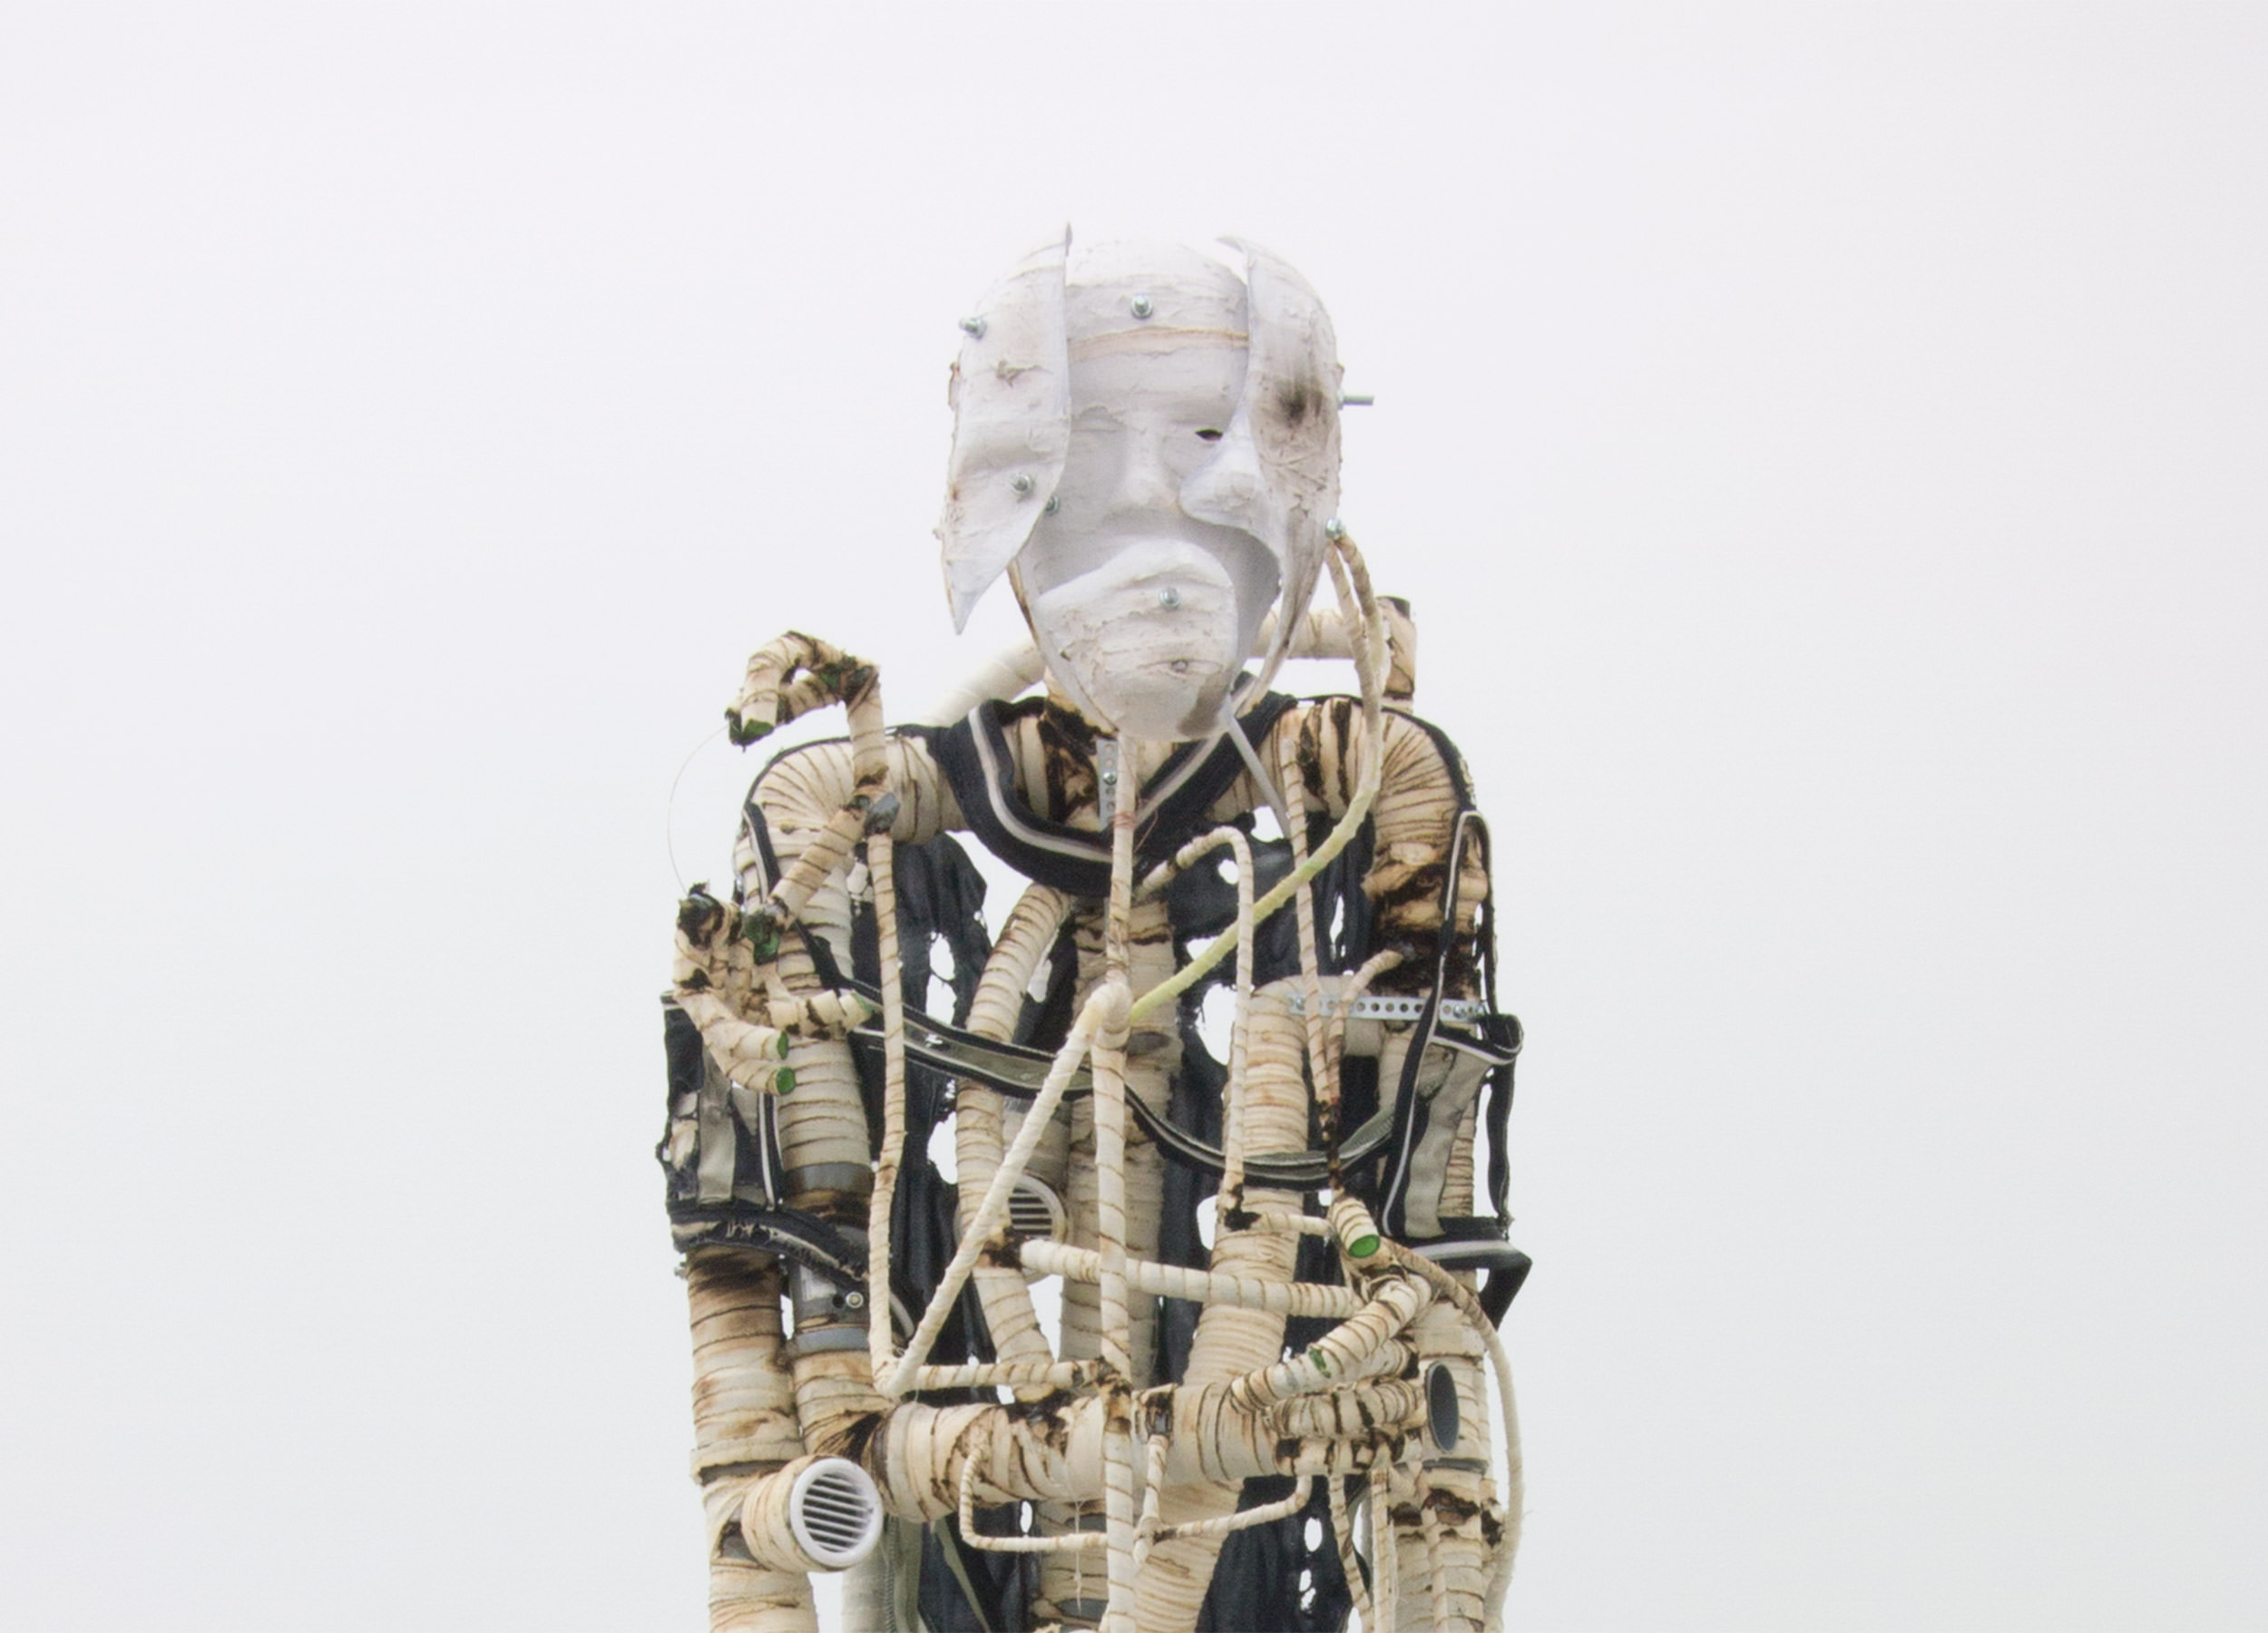 Renaud Jerez, EXRHB2, 2014. PVC, aluminum, fabric, jersey, rubber, 180 x 55 x 45 cm. Courtesy of the Artist and Crèvecoeur, Paris.